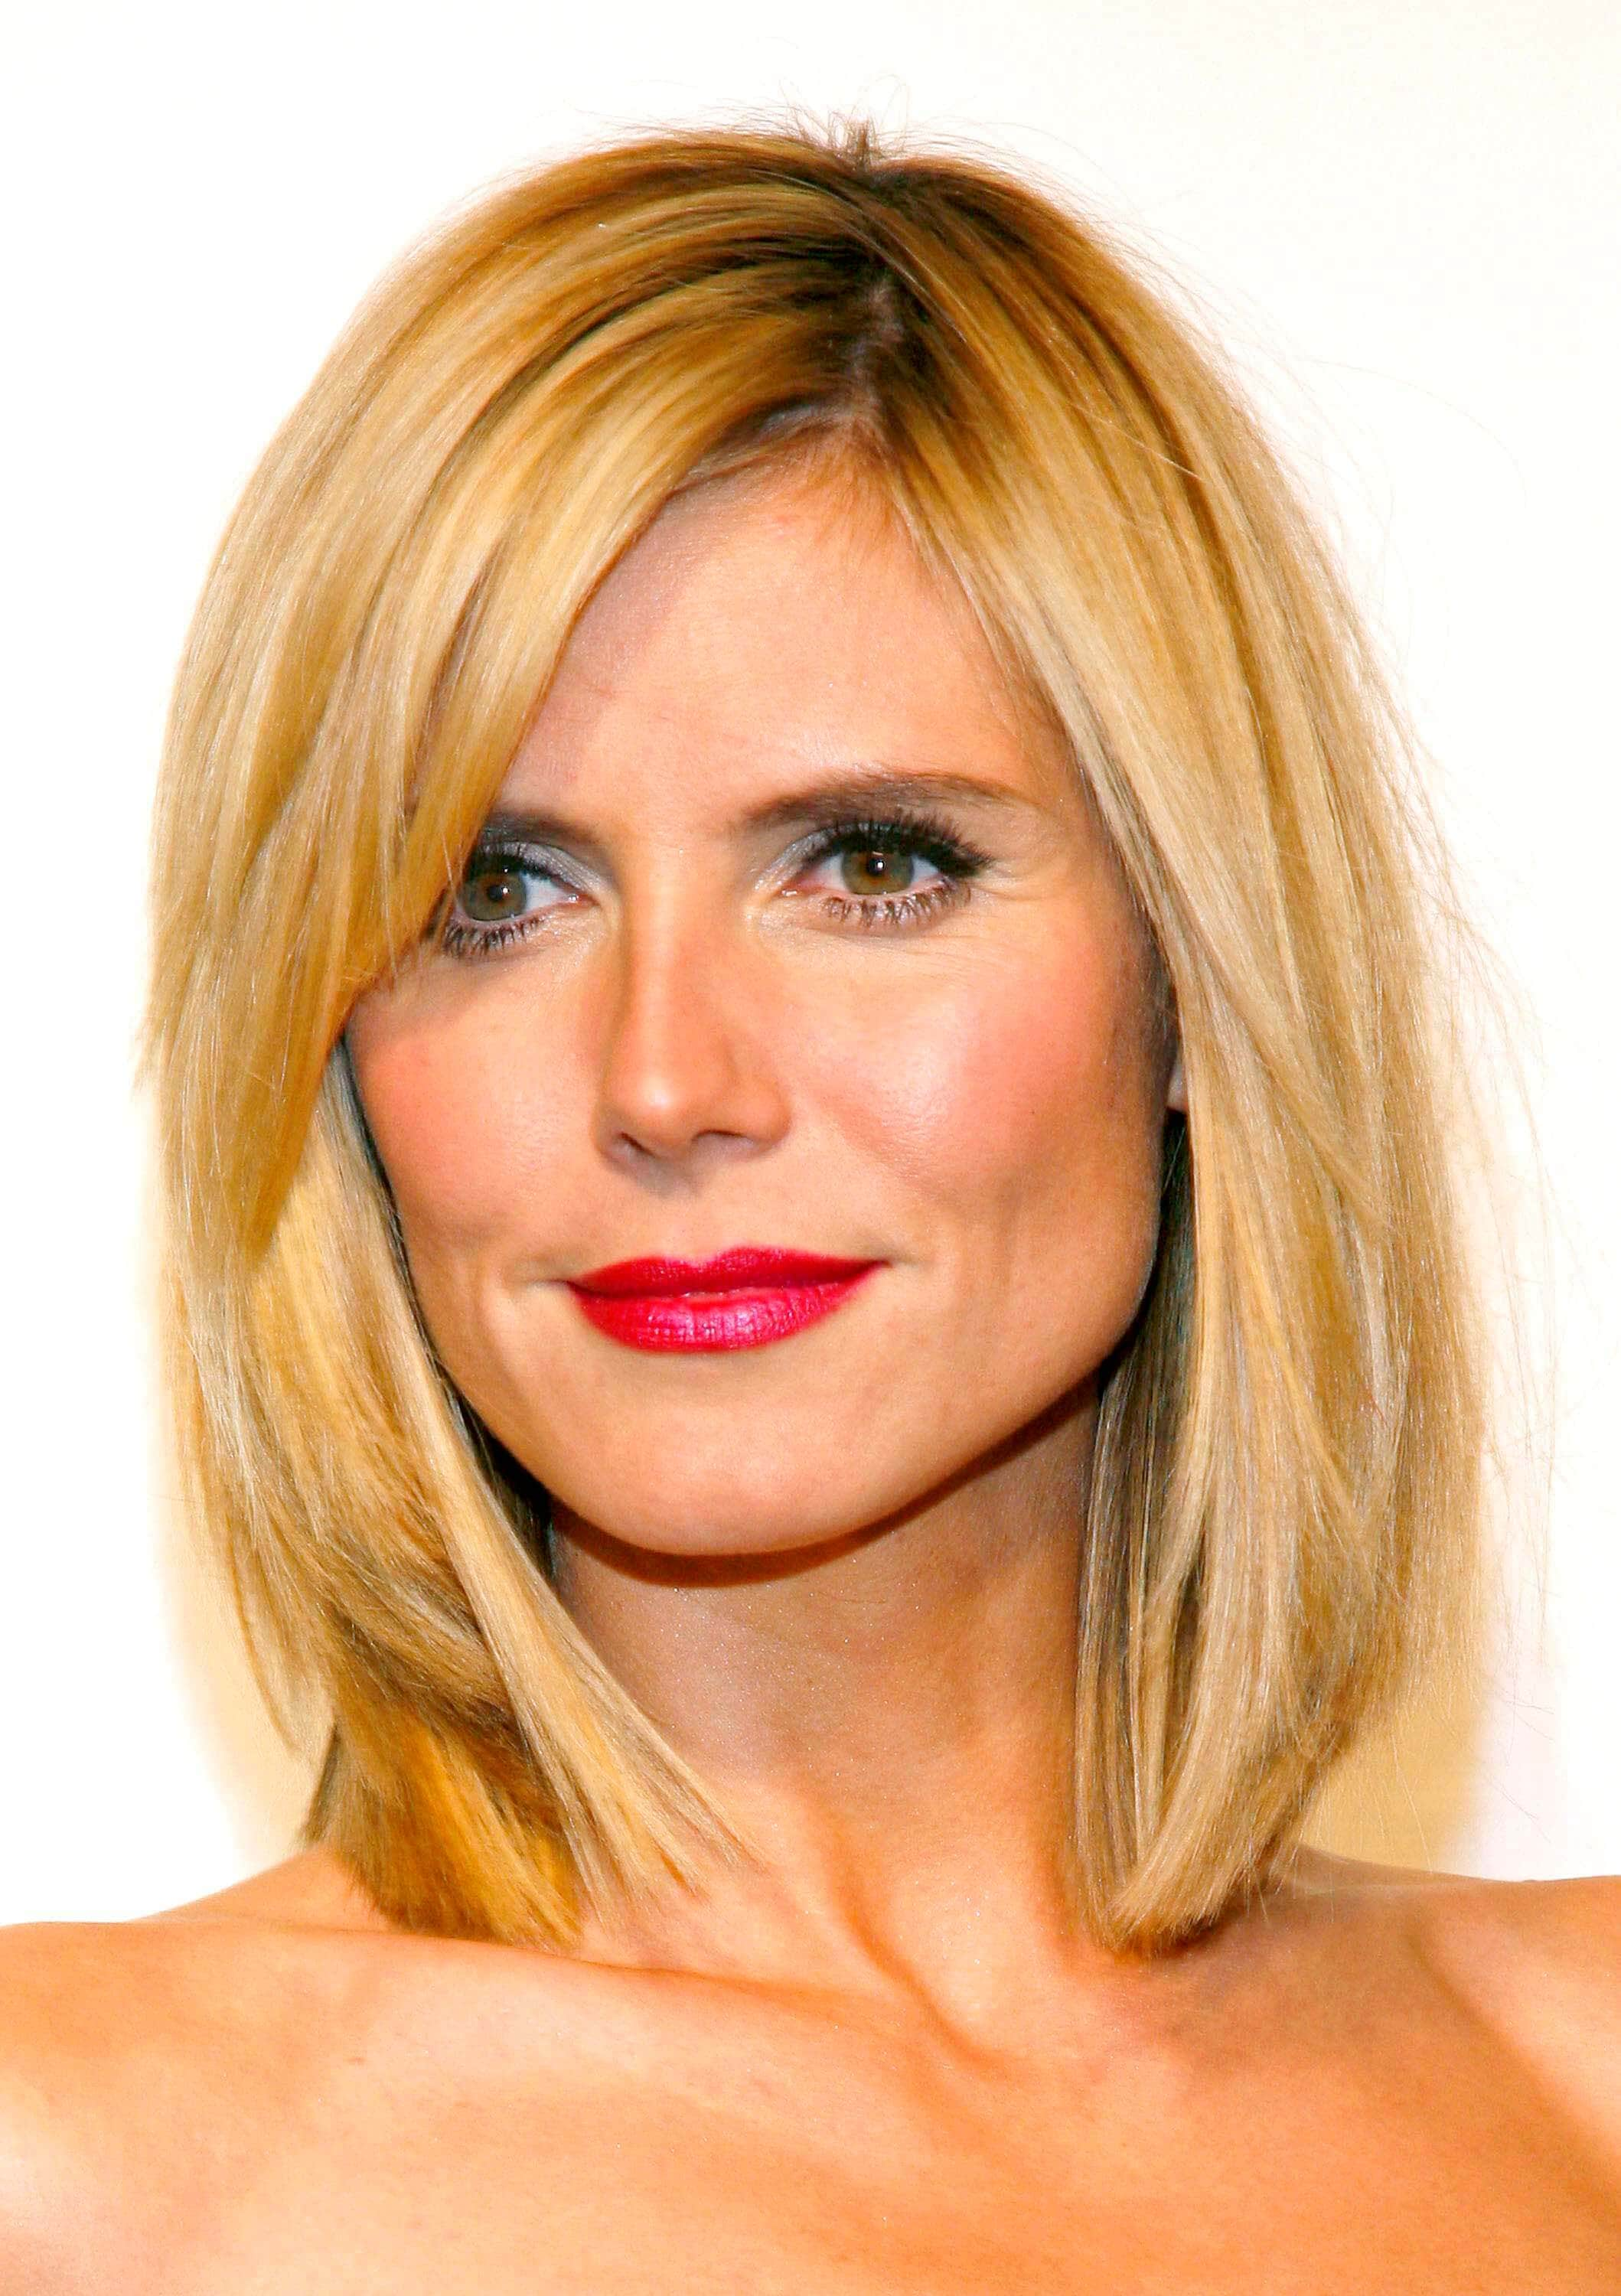 5 Flattering Short Hairstyles For Square Faces You Need To See